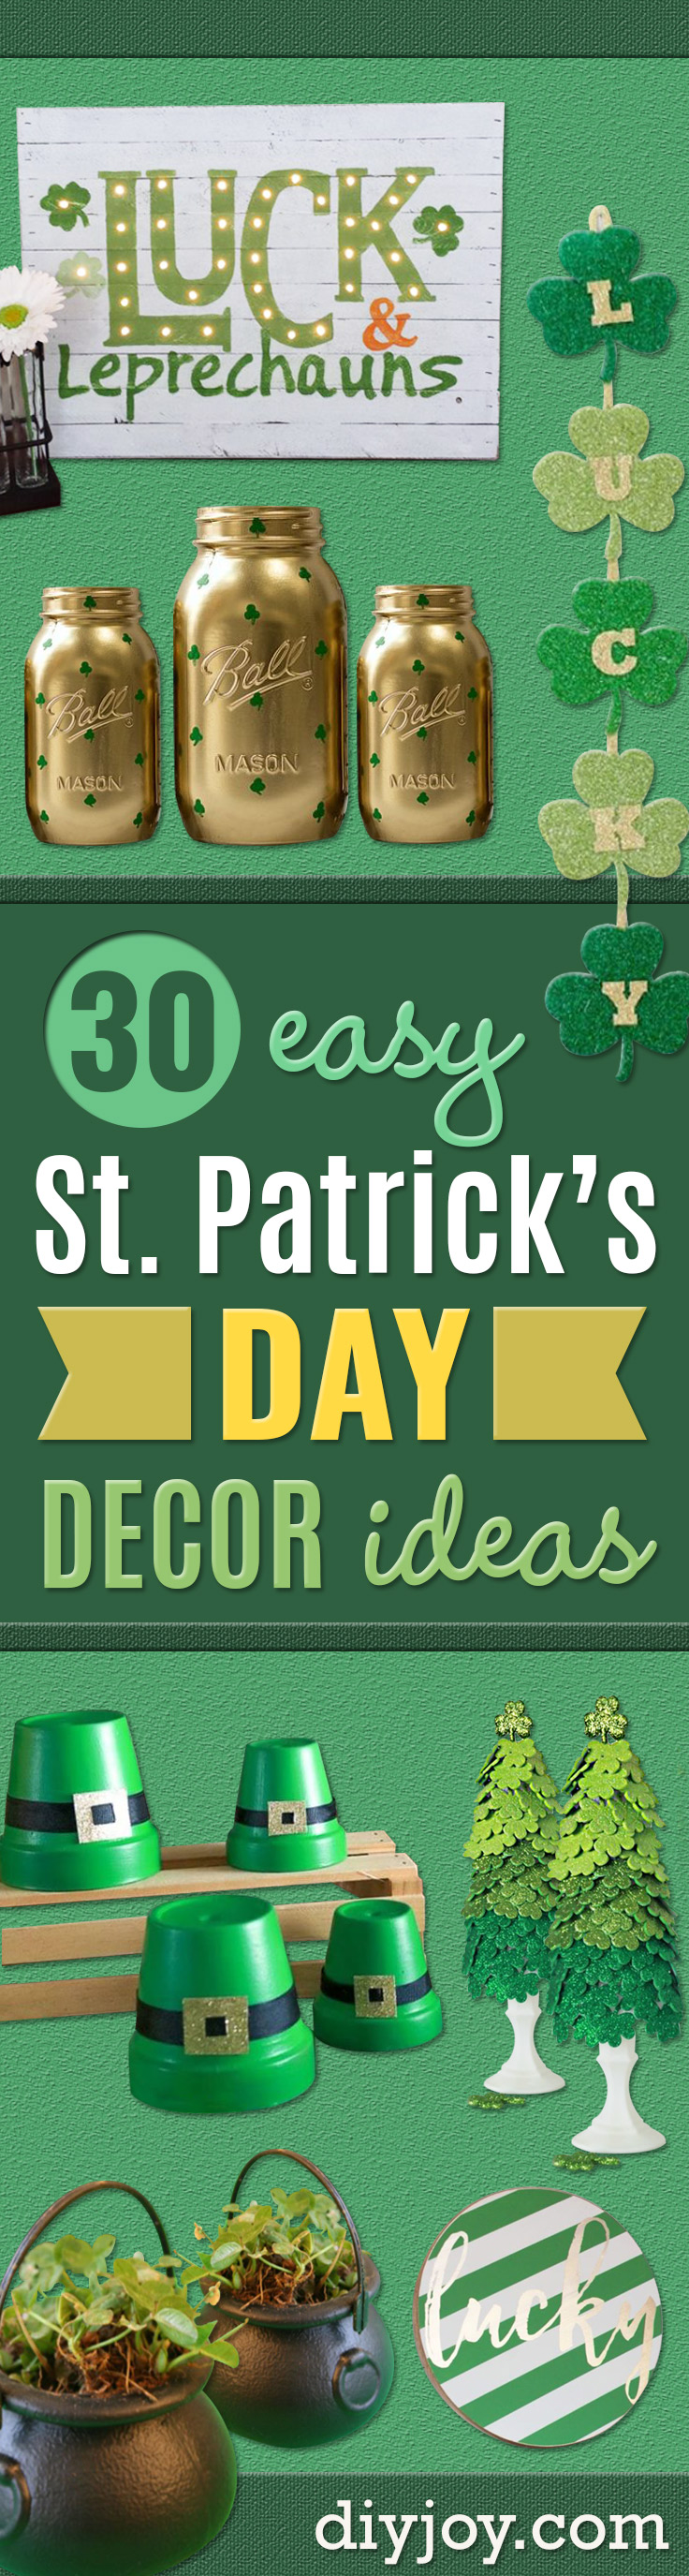 St Patricks Day Decor Ideas - DIY St. Patrick's Day Party Decorations and Home Decor Crafts - Projects for Walls, Hanging Banners, Wreaths, Tabletop Centerpieces and Party Favors - Green Shamrocks, Leprechauns and Cute and Easy Do It Yourself Decor For Parties - Cheap Dollar Store Ideas for Those On A Budget http://diyjoy.com/diy-st-patricks-day-decor